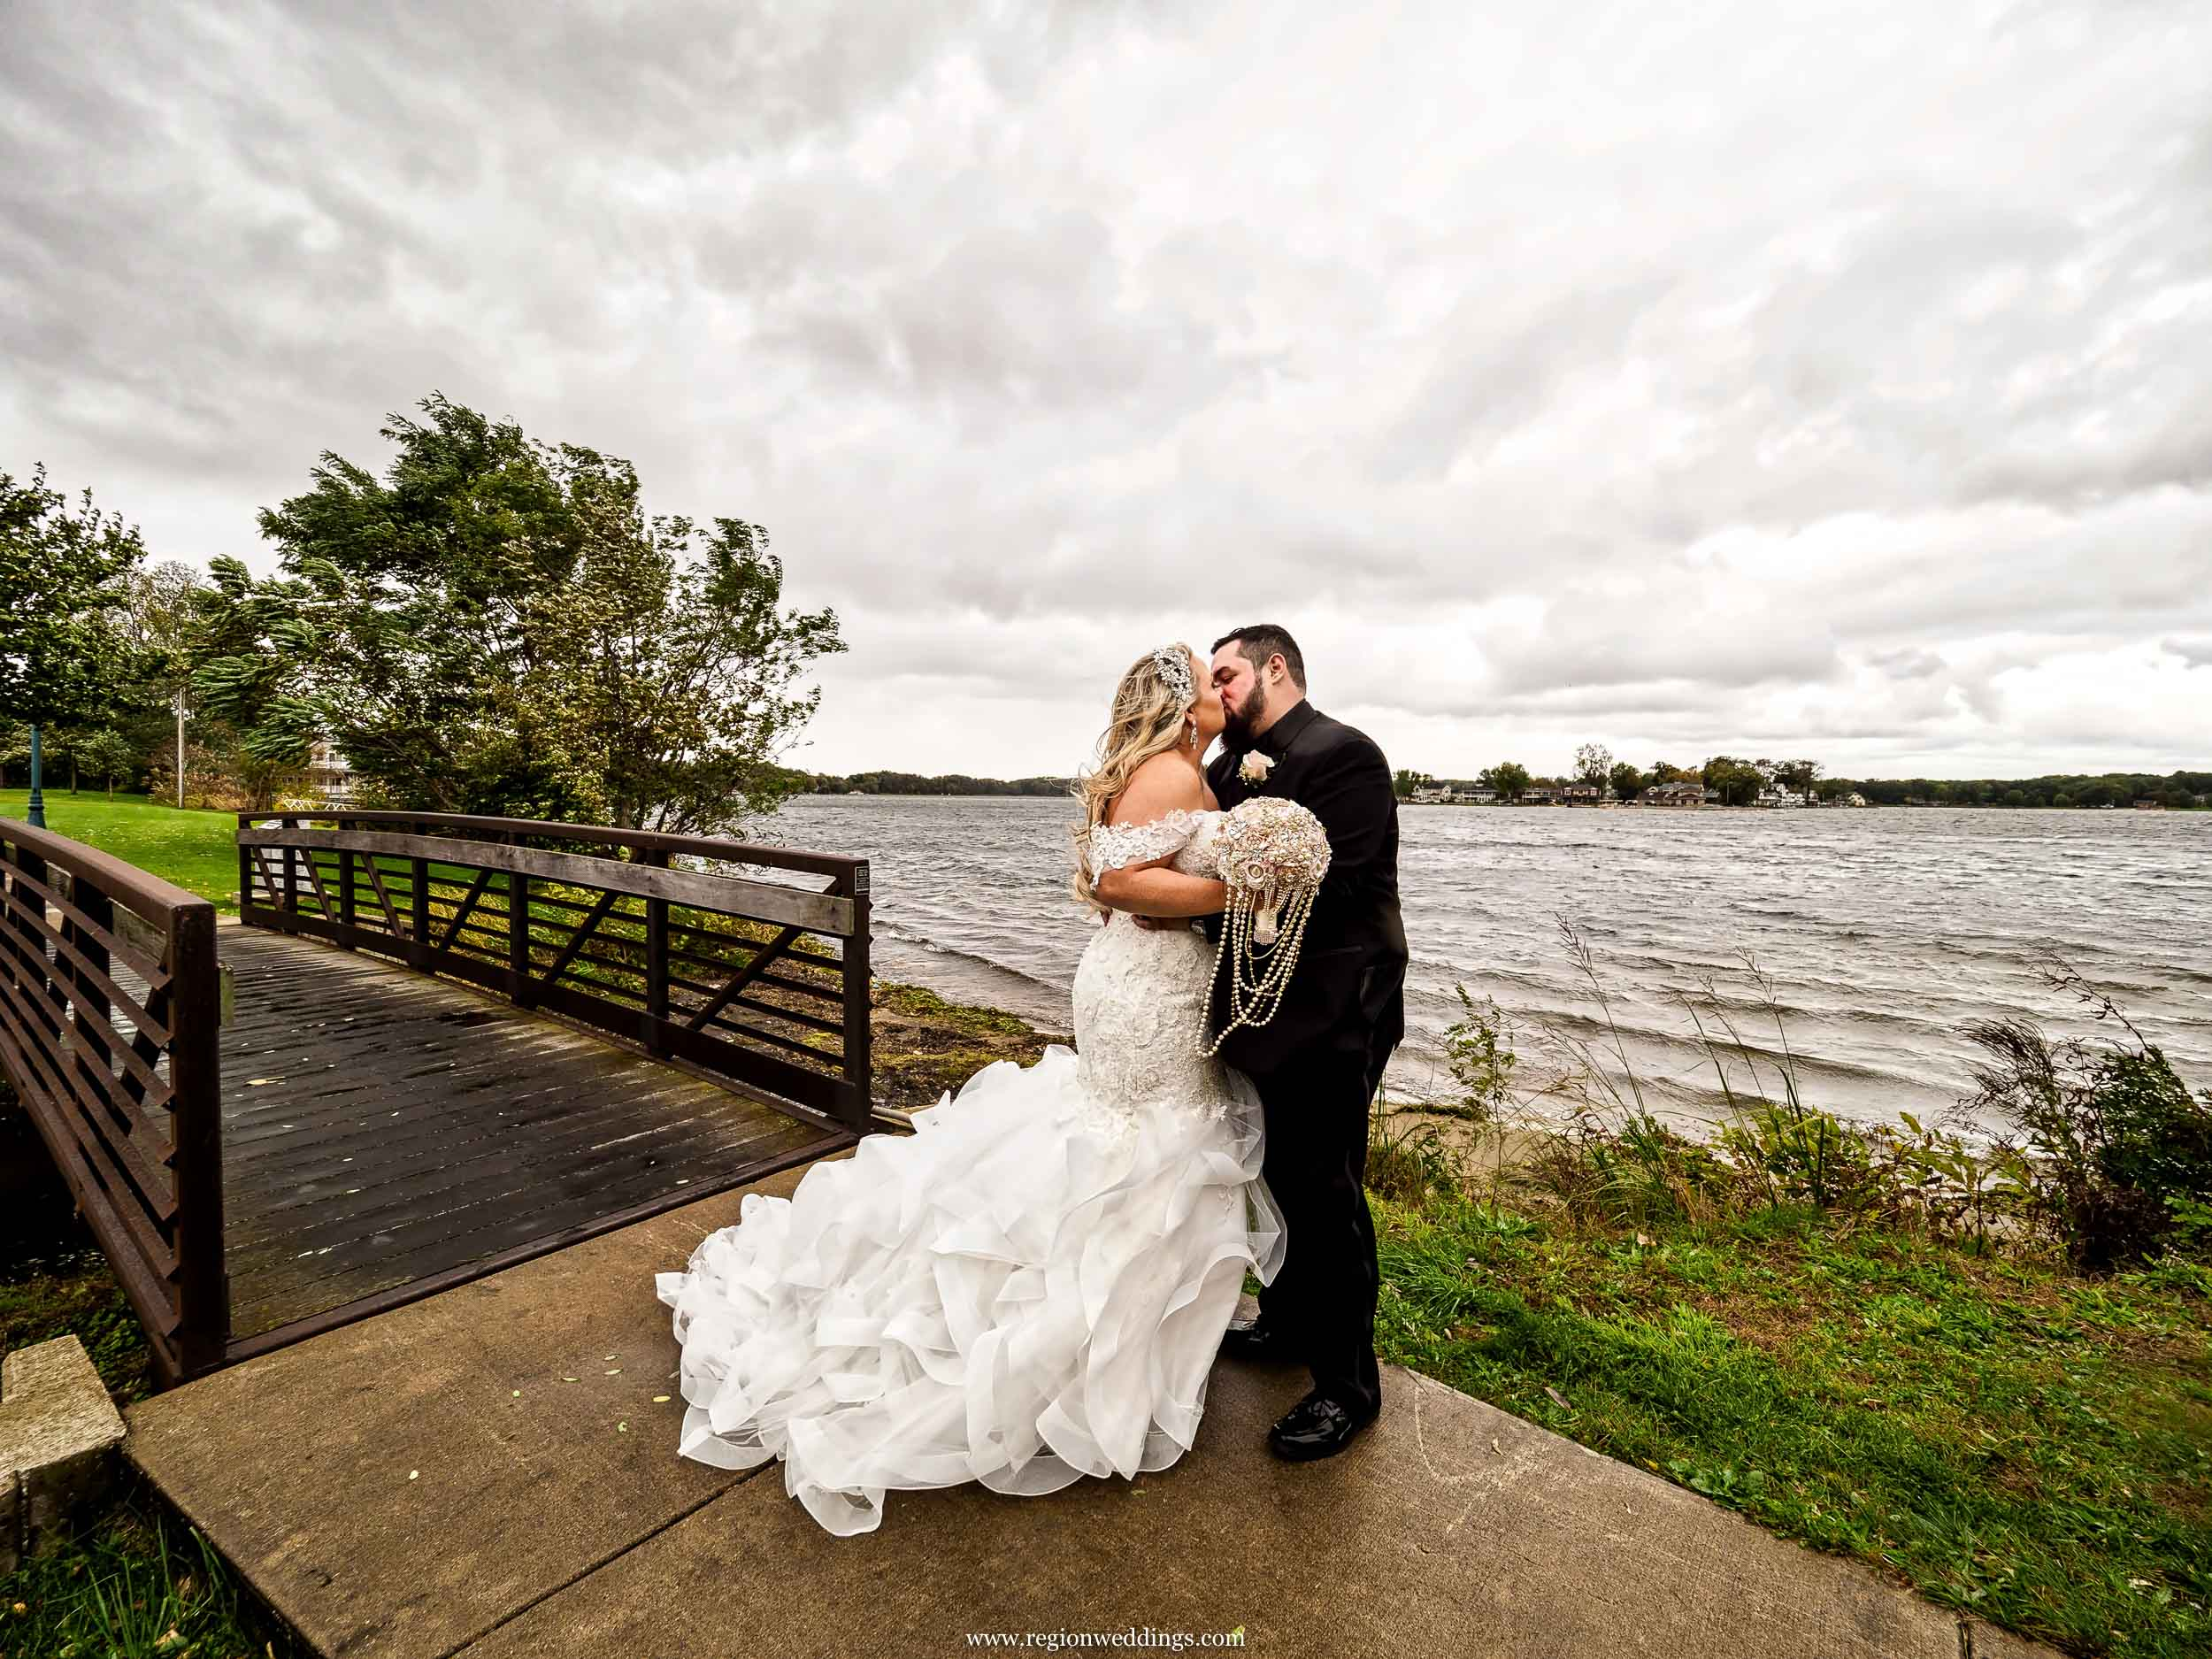 A wedding picture during a hailstorm in Laporte, Indiana.